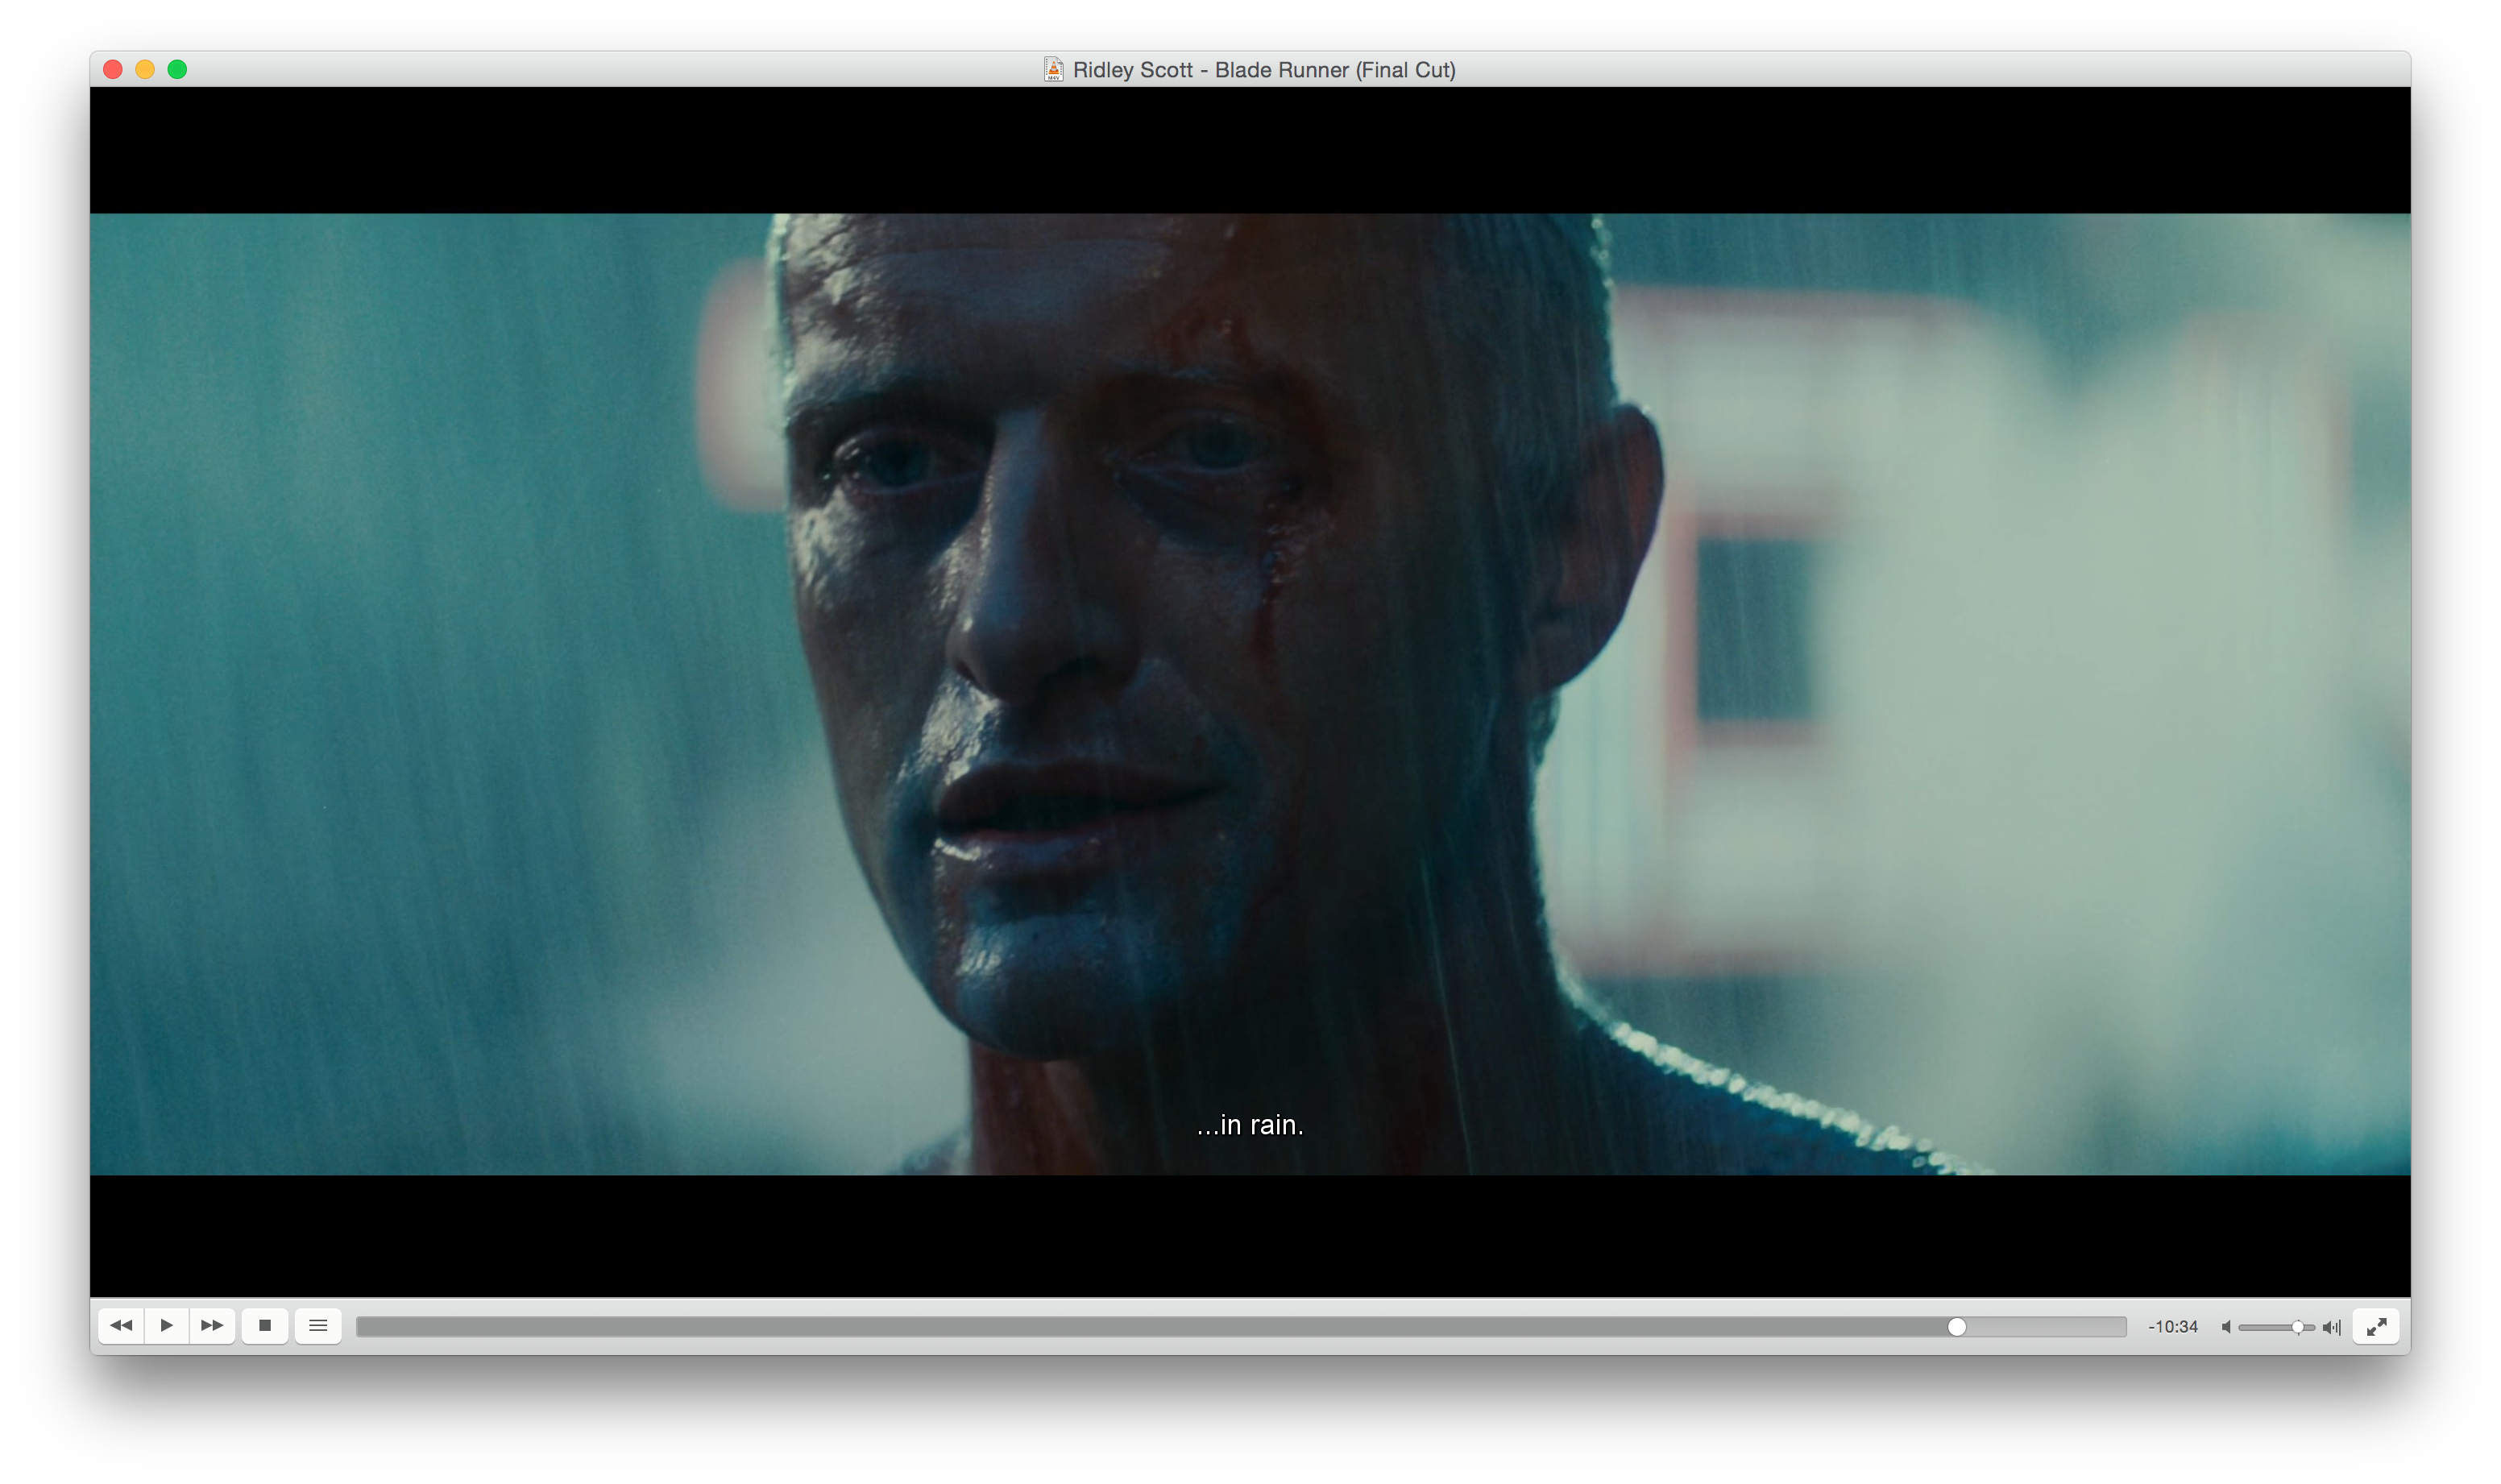 Blade Runner By Ridley Scott Cinematography Jordan Cronenweth Blade Runner Rutger Hauer Blade Runner Wallpaper